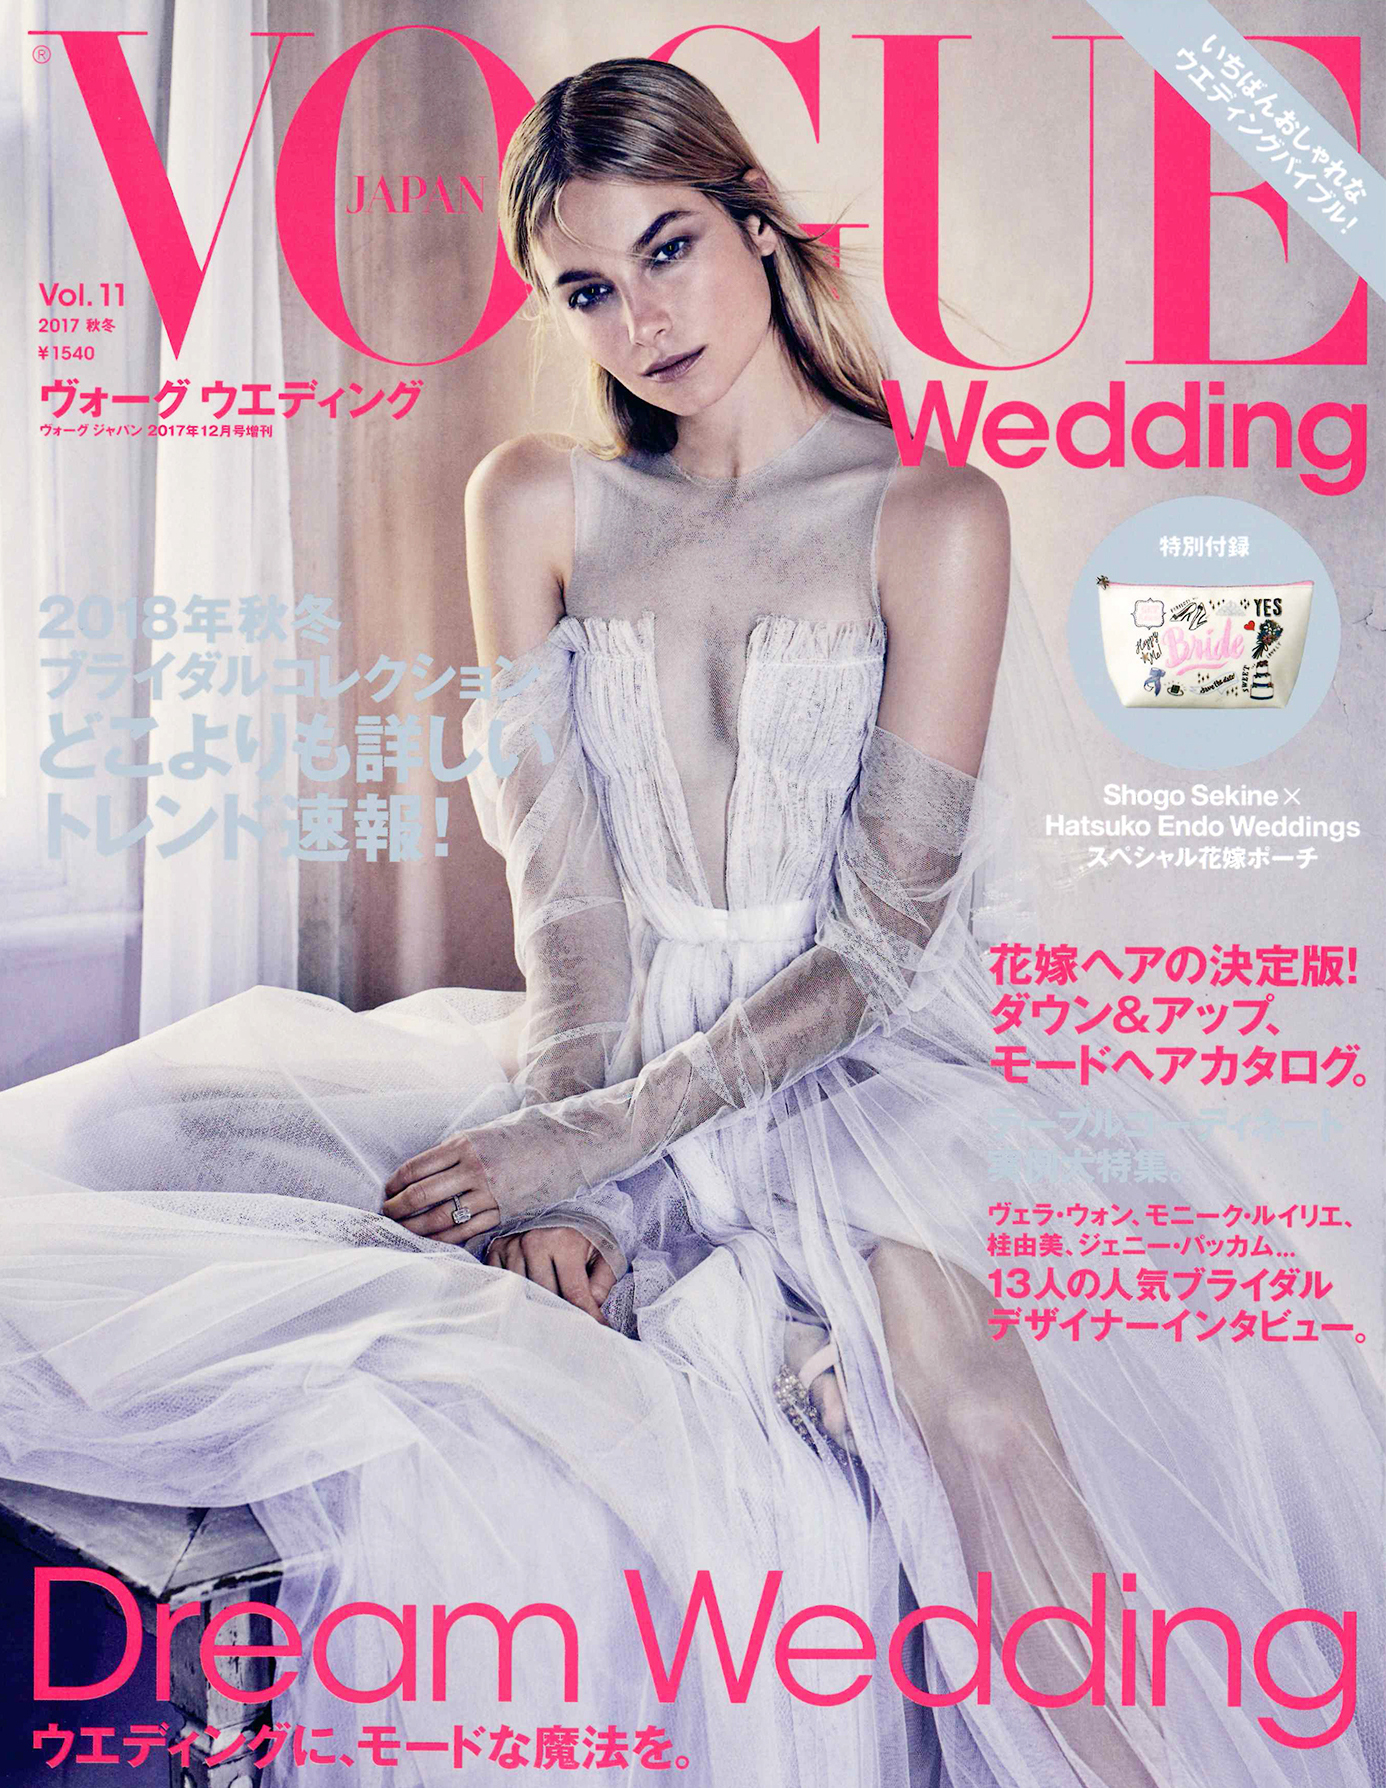 VOGUE Wedding表紙